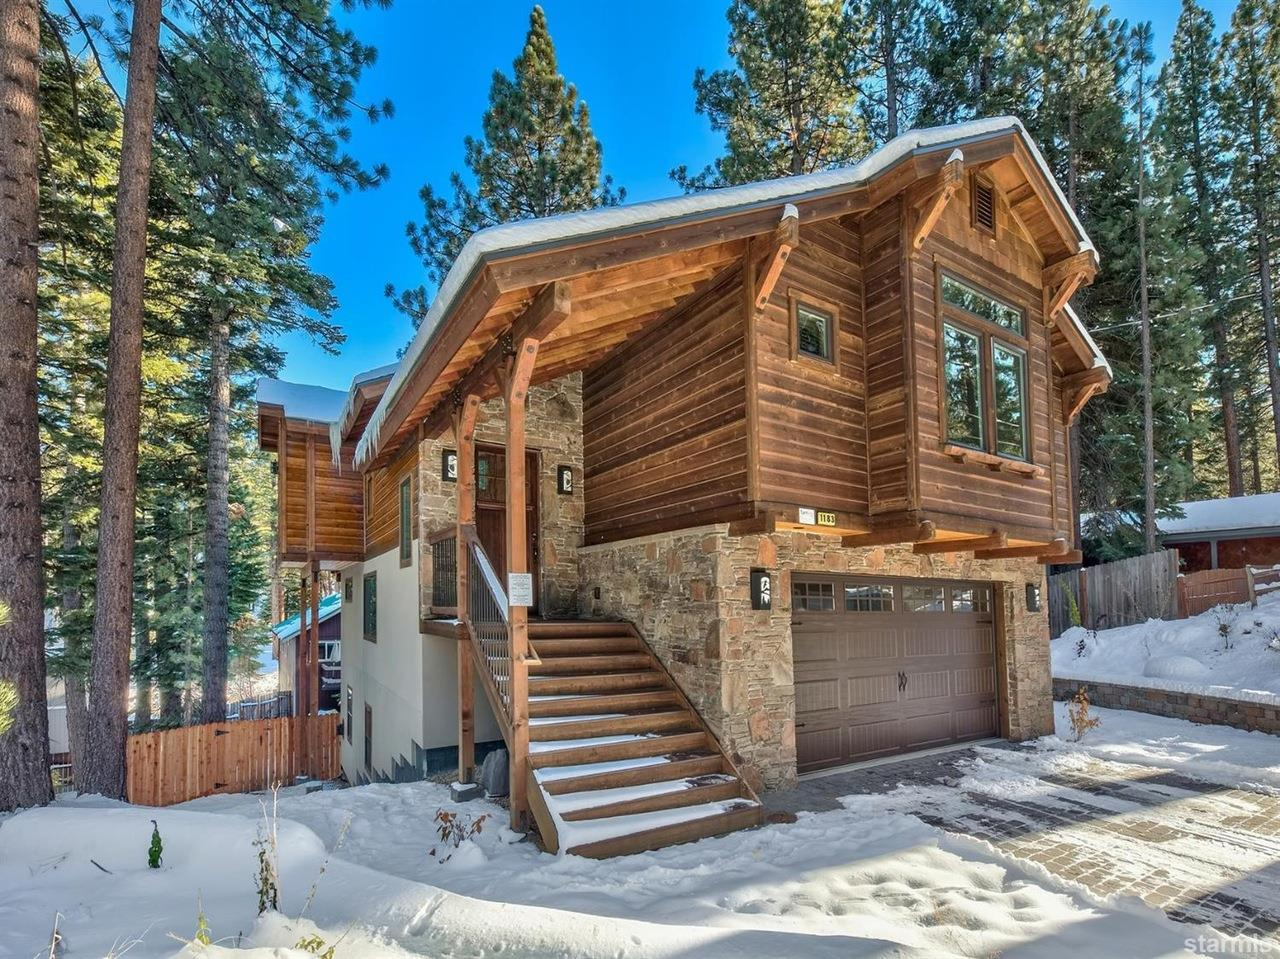 Chase International is pleased to announce the sale of 1183 Prospector, South Lake Tahoe, CA, for $1,215,000